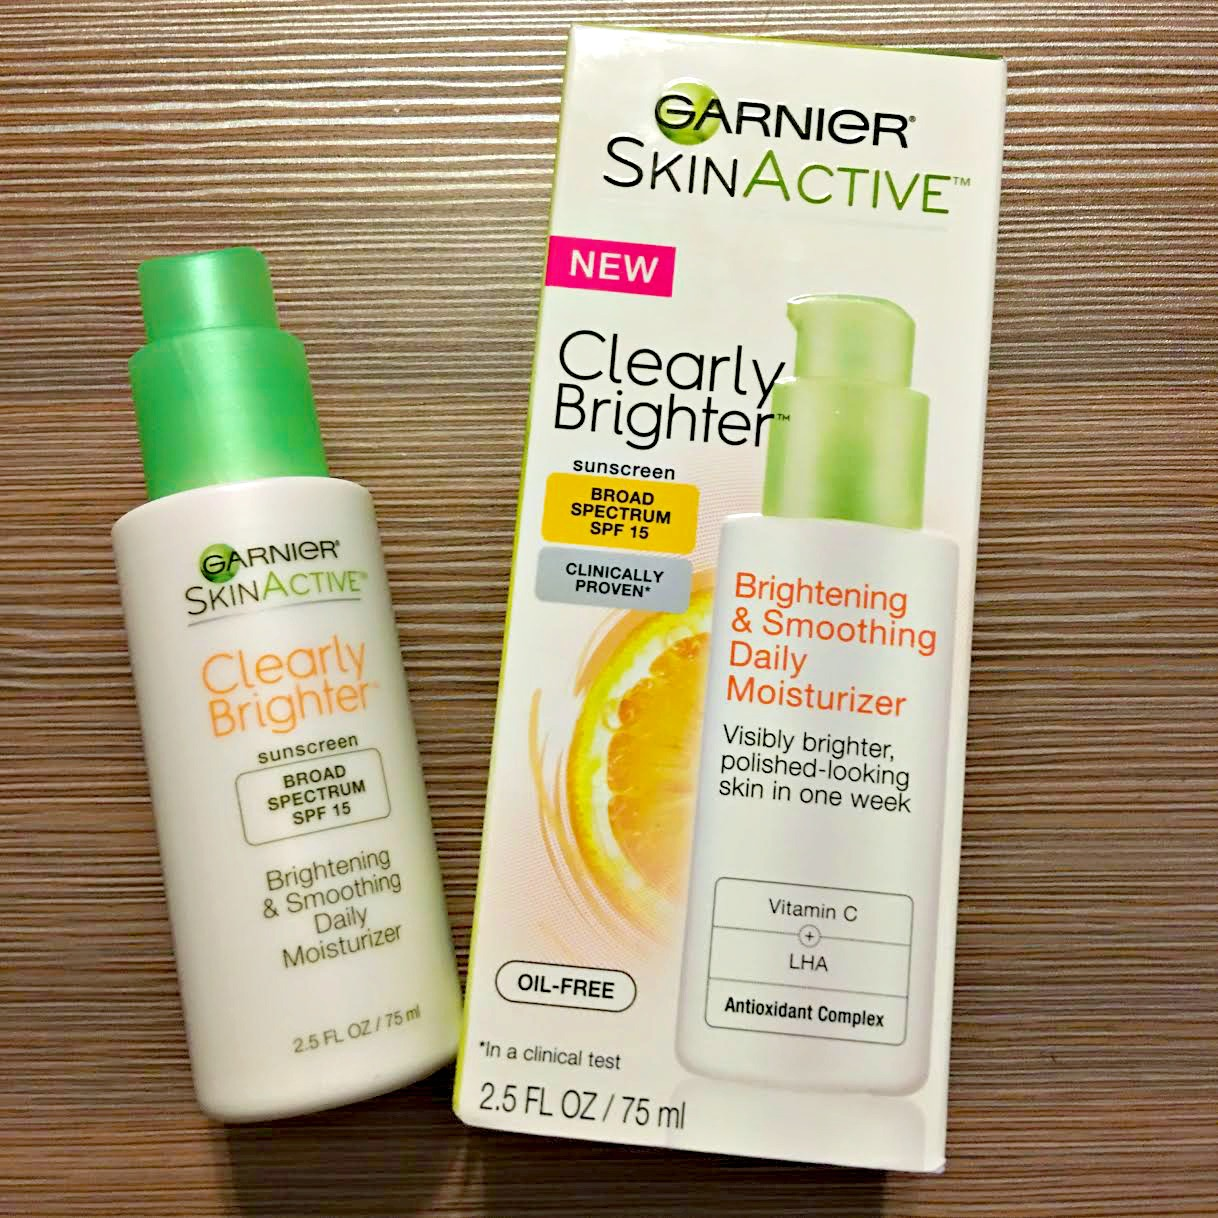 Garnier SkinActive Clearly Brighter Brightening and Smoothing Daily Moisturizer Review